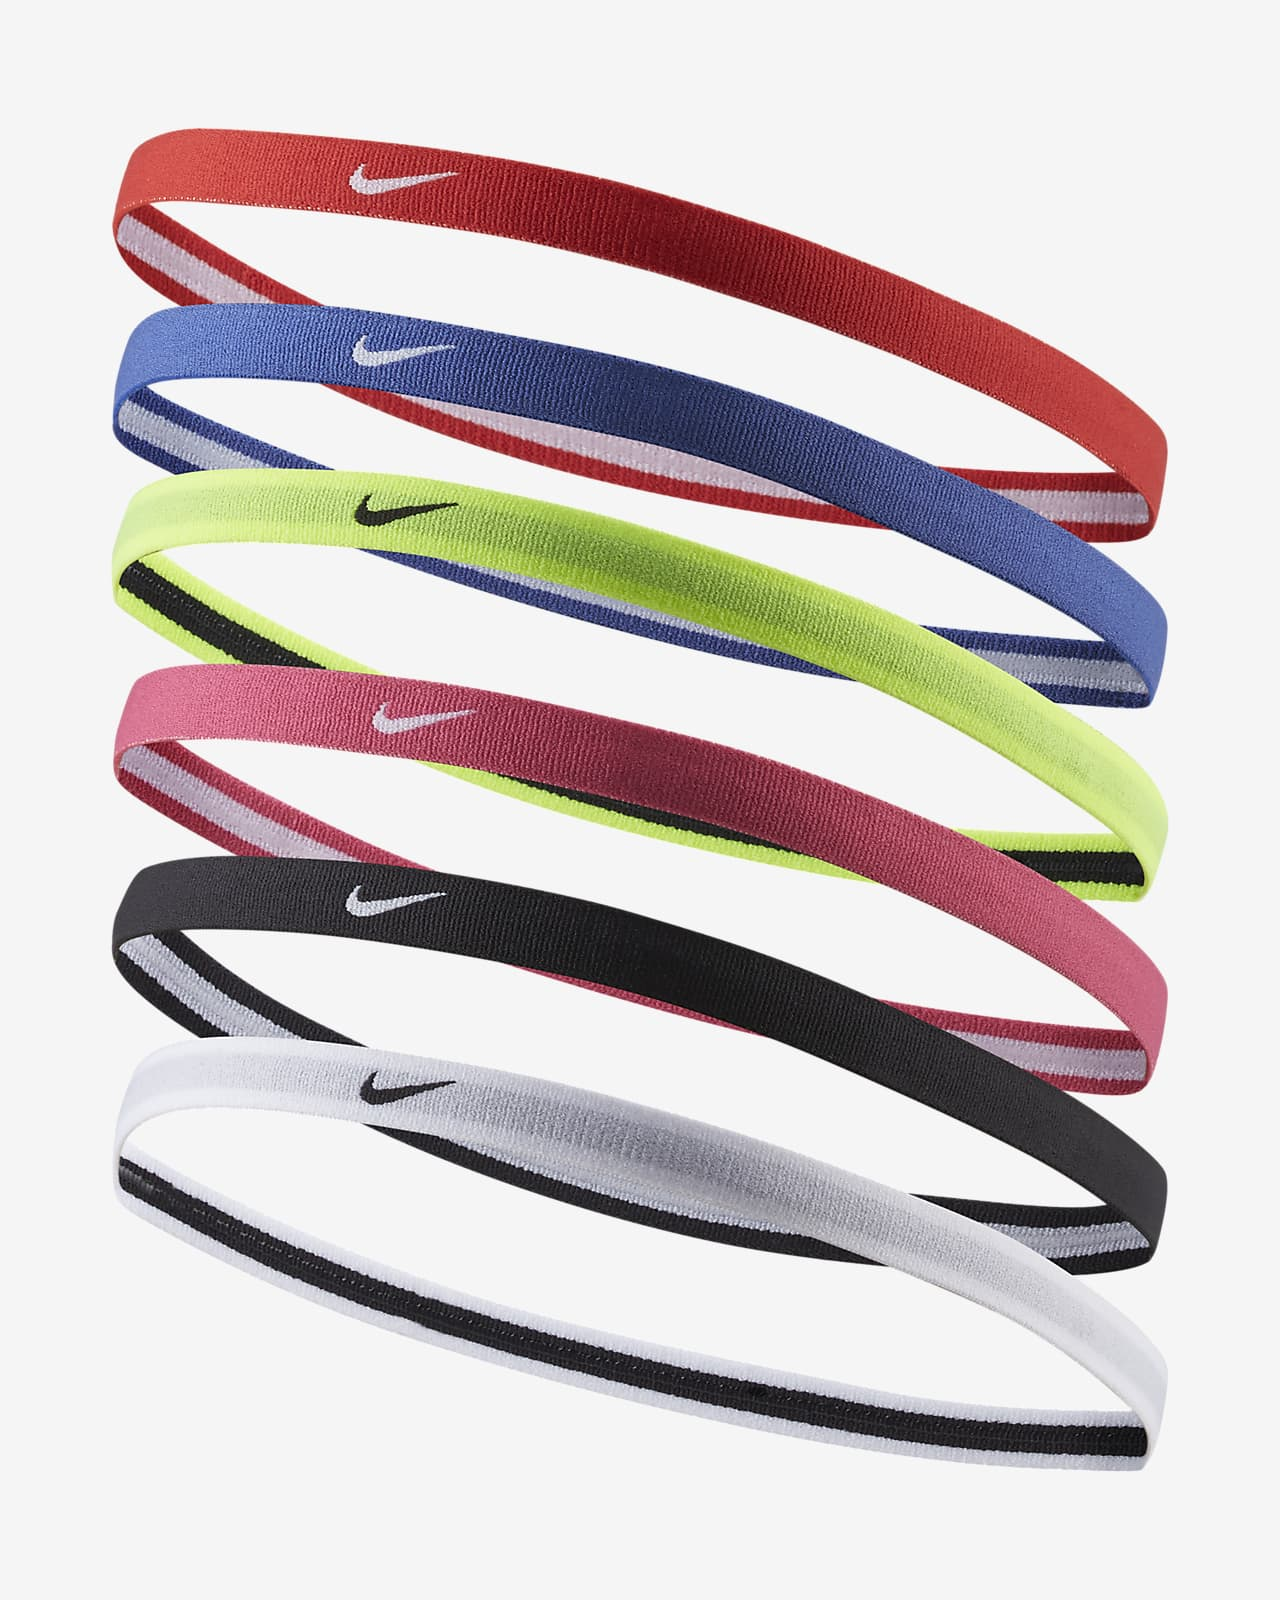 Nike Swoosh Kids' Headbands (6 Pack)